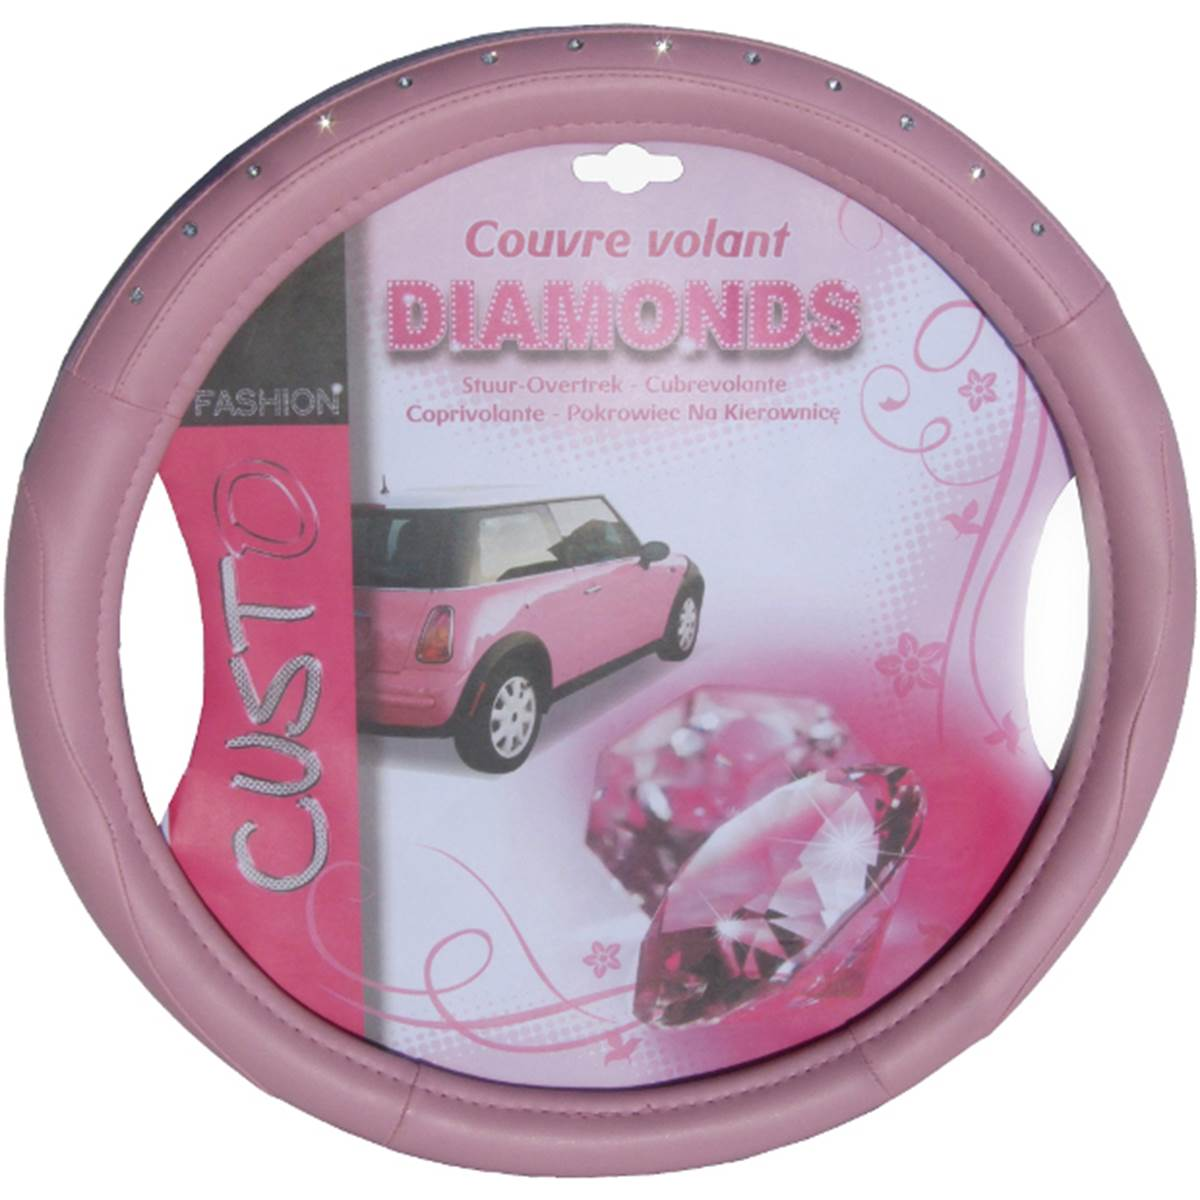 Couvre volant rose for Couvre volant fourrure